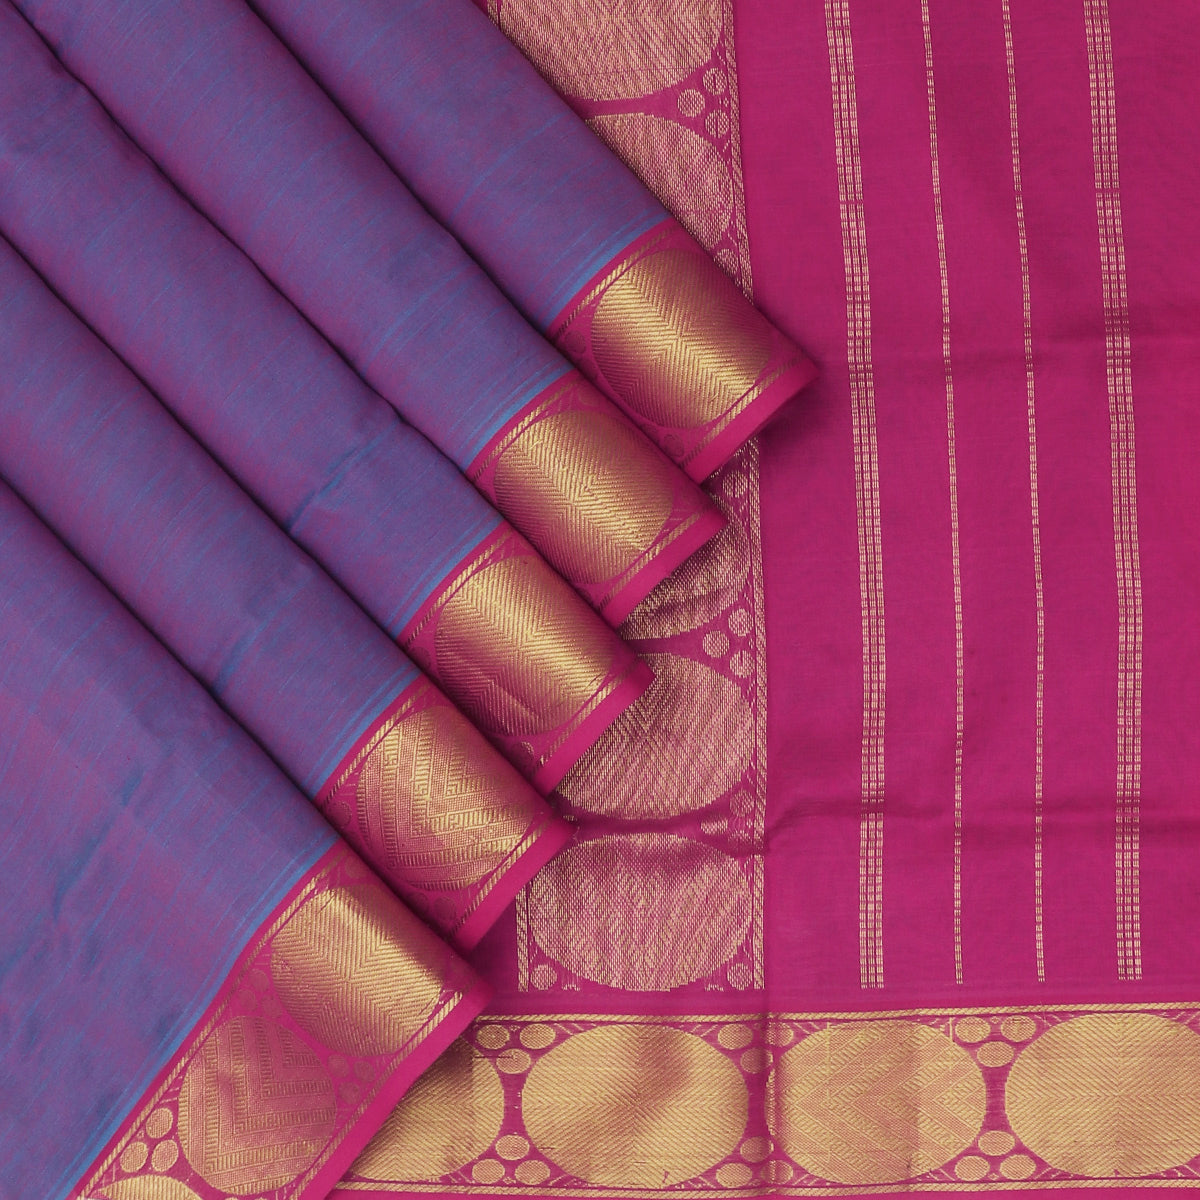 Semi Silk Cotton Saree Violet and Pink Dual Shade with Round Zari border for Rs.Rs. 2450.00 | Cotton Sarees by Prashanti Sarees